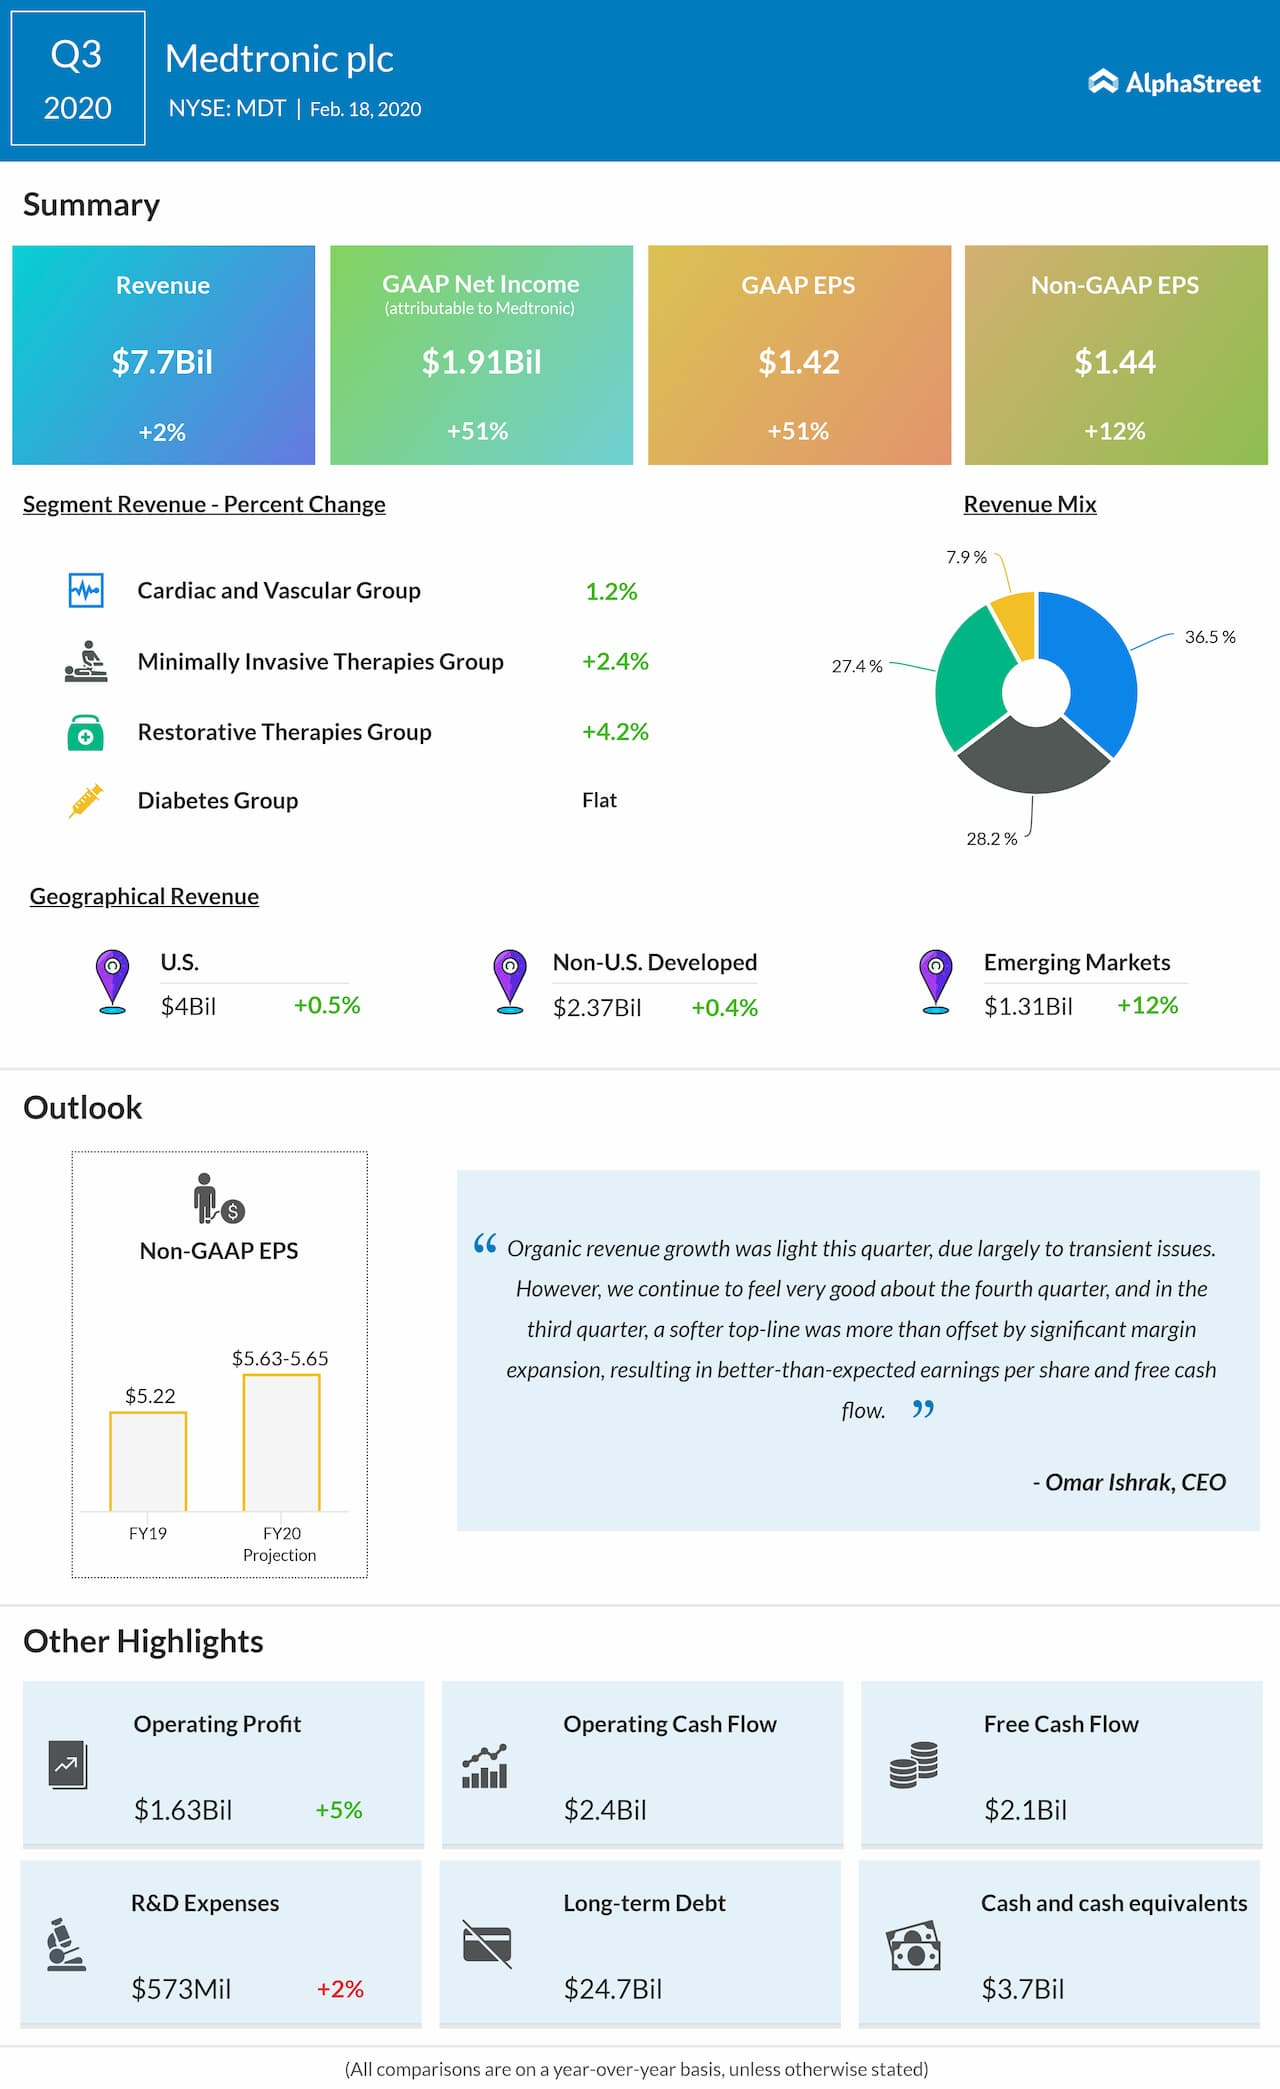 Medtronic (MDT) reports Q3 2020 earnings results